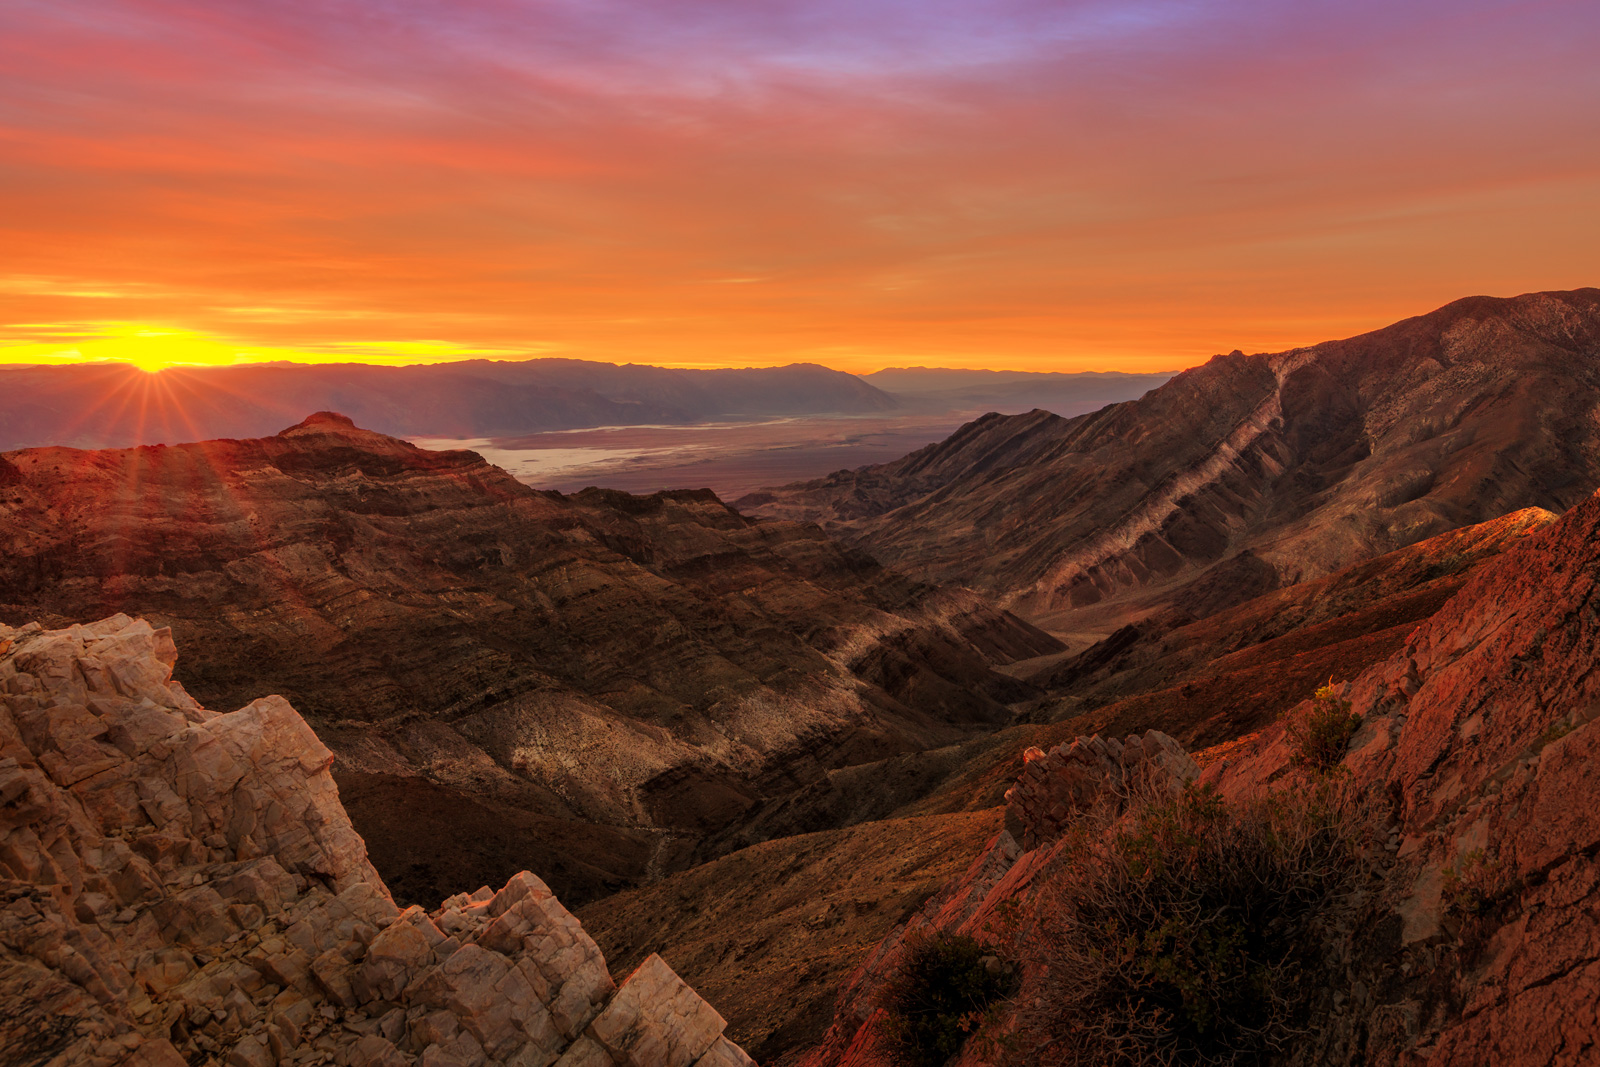 A Limited Edition, Fine Art photograph of a stunning sunburst and sunrise over the valley from Aguereberry Point in Death Valley...